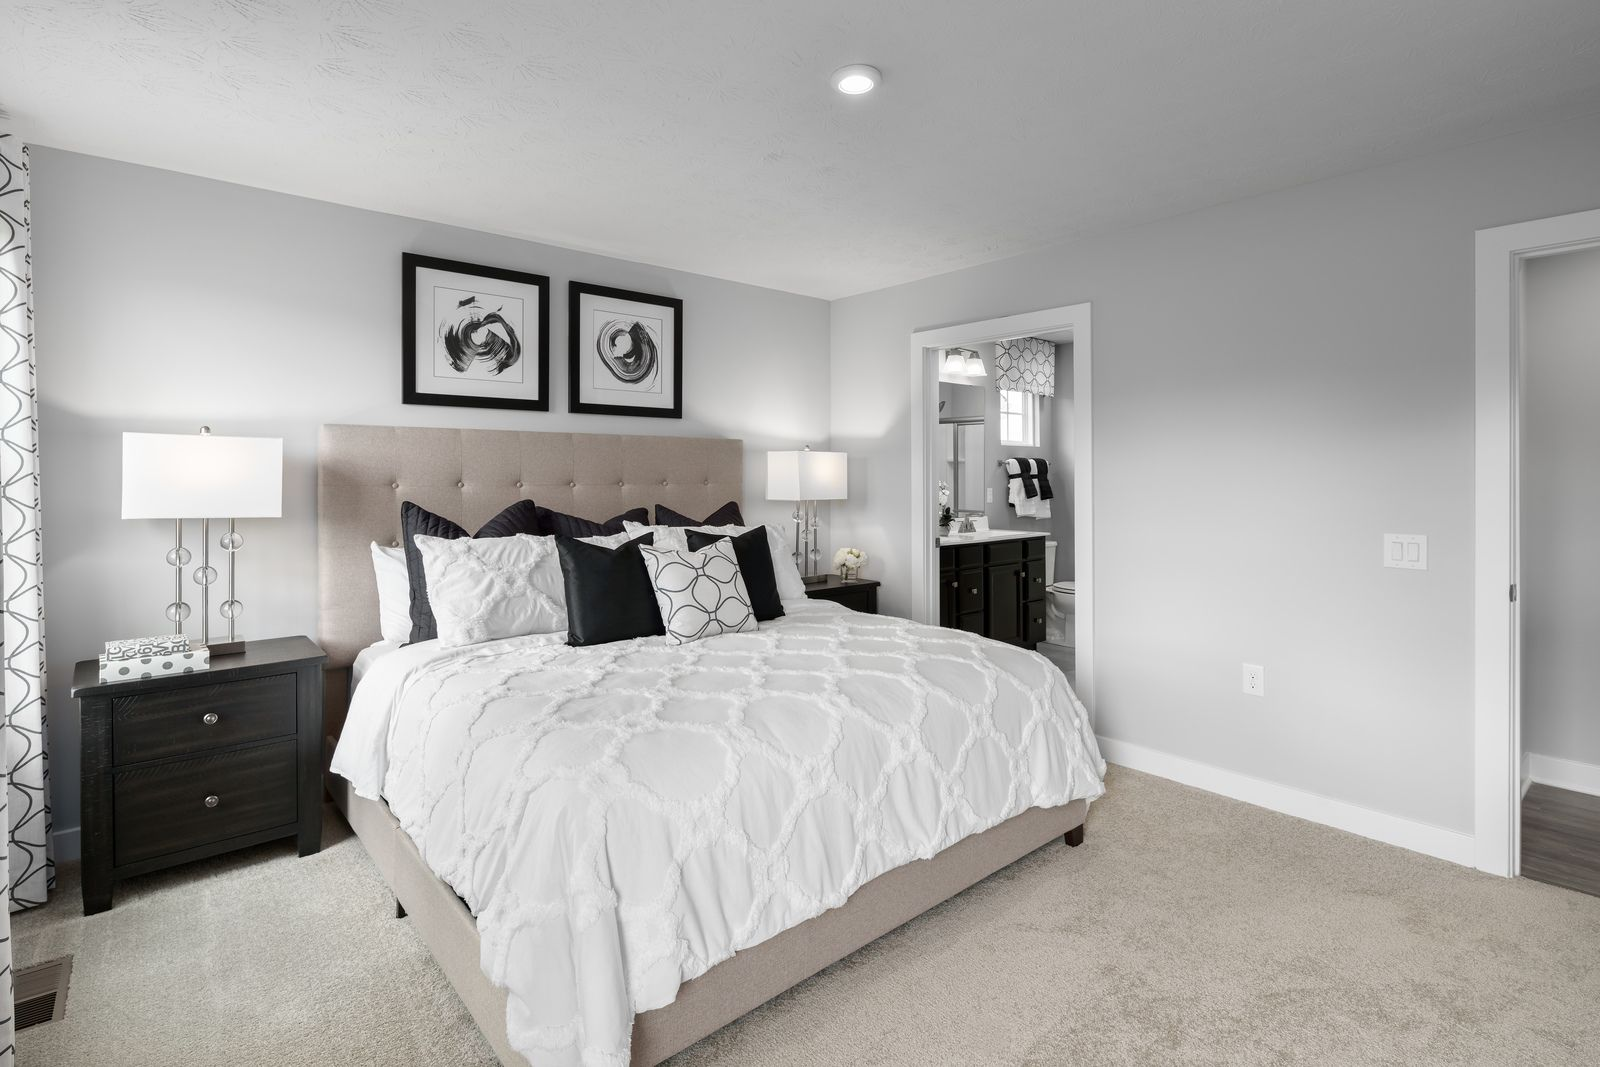 Bedroom featured in the Grand Bahama By Ryan Homes in Philadelphia, NJ